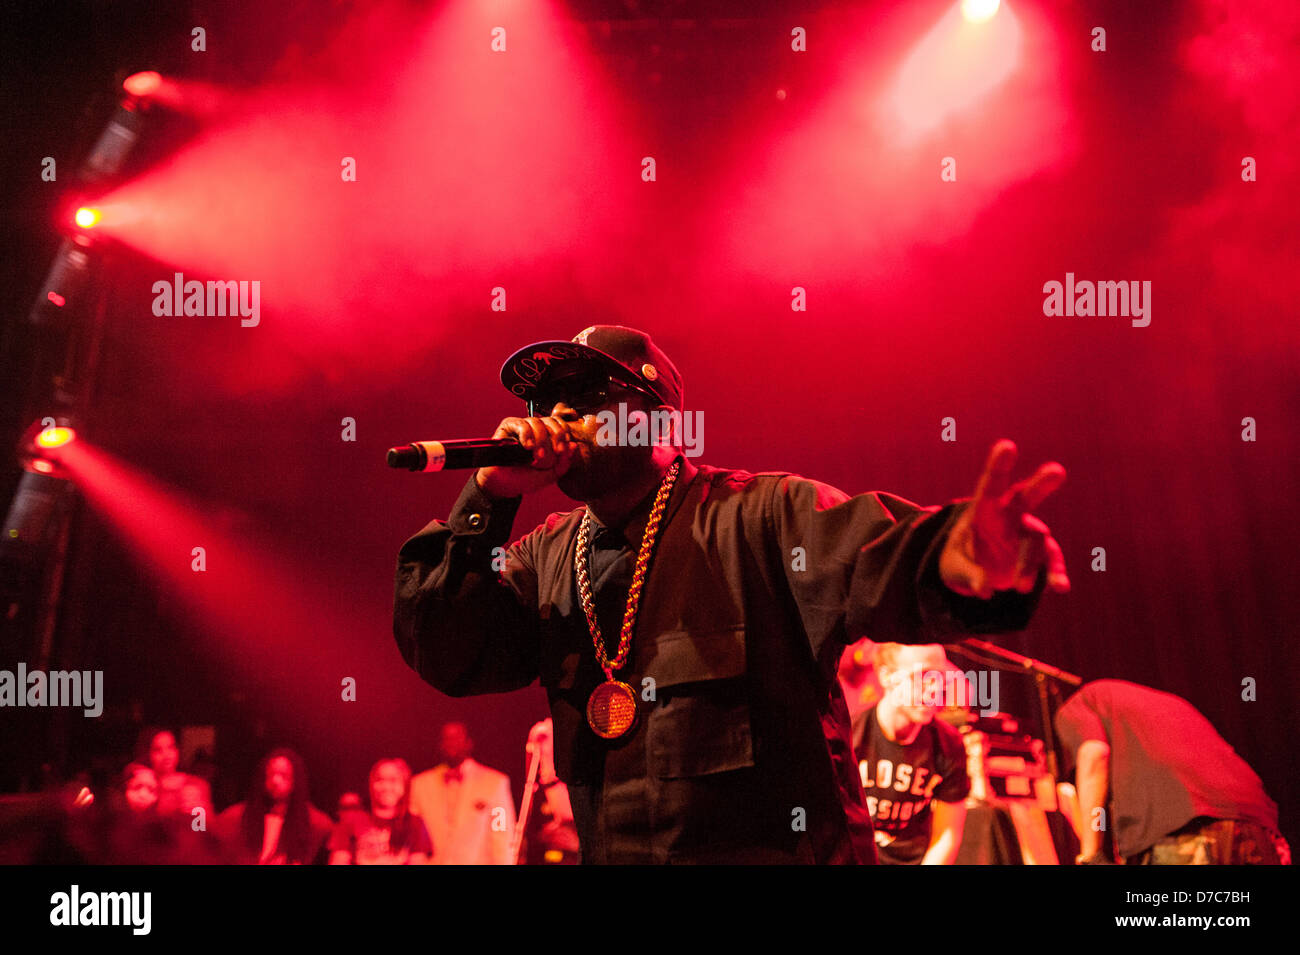 Hip-hop artist Big Boi performing on May 1, 2013 at Park West in Chicago. Credit: Max Herman/Alamy Stock Photo